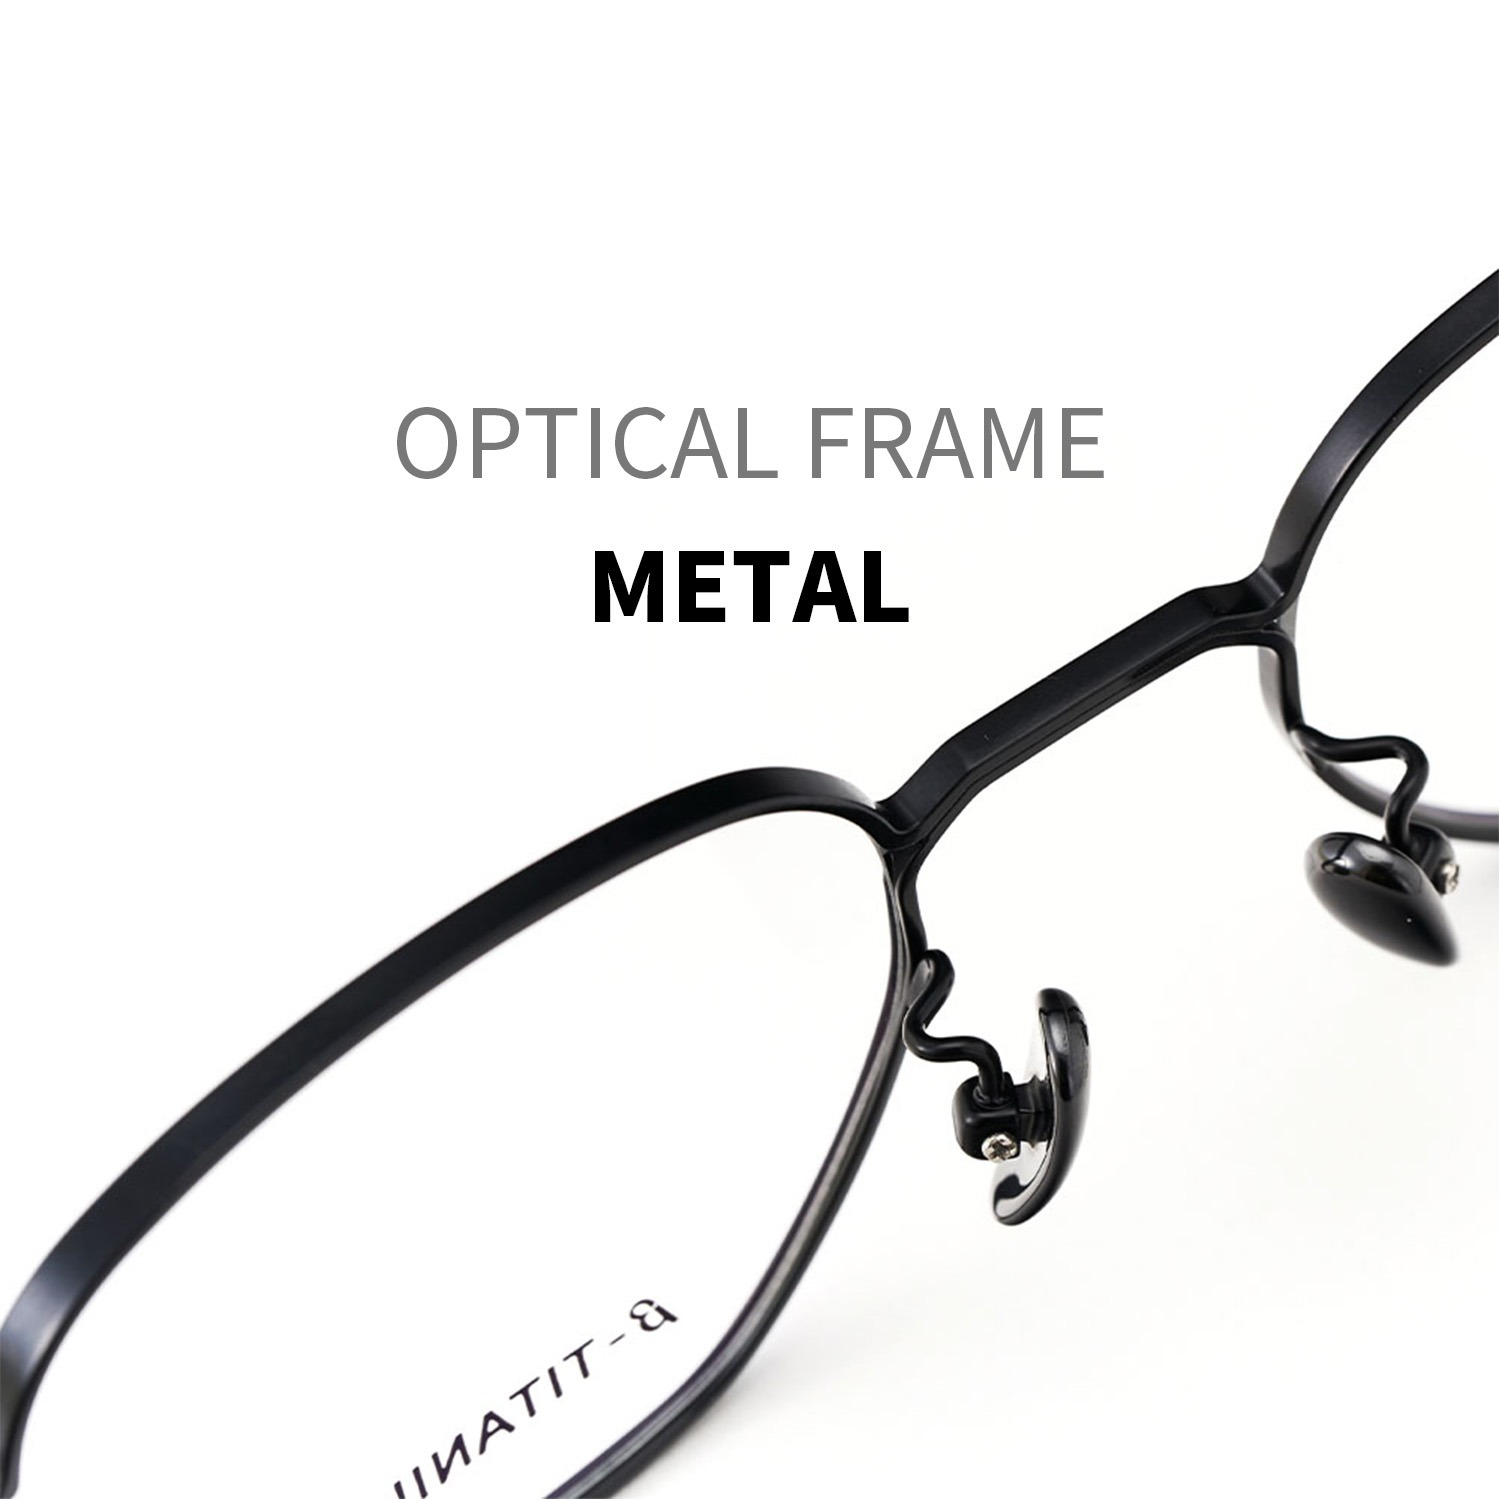 OPTICAL FRAME _ I COLLECTION